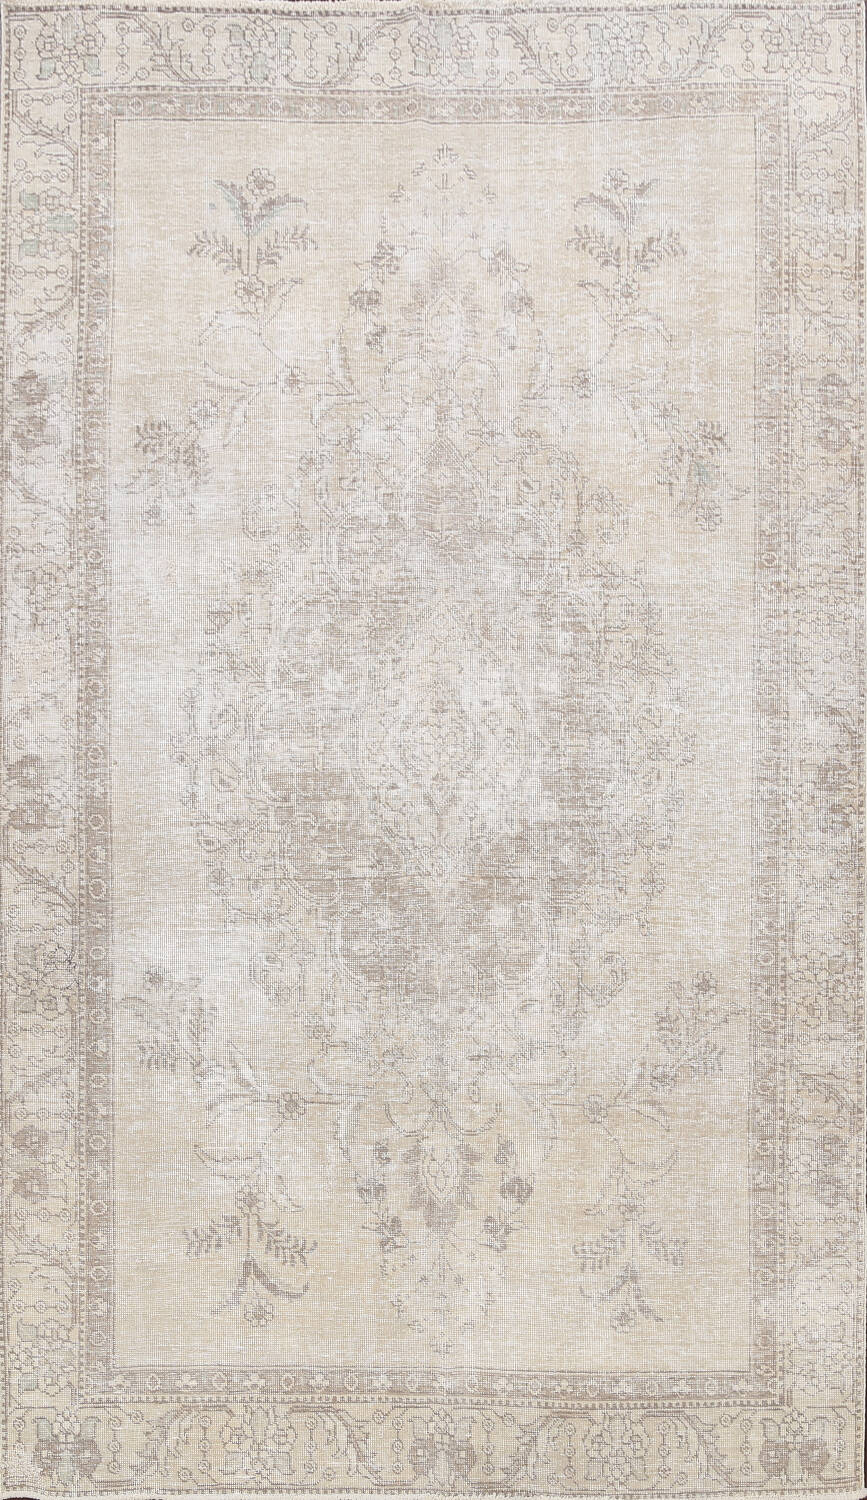 Muted Distressed Floral Tabriz Persian Area Rug 6x9 image 1